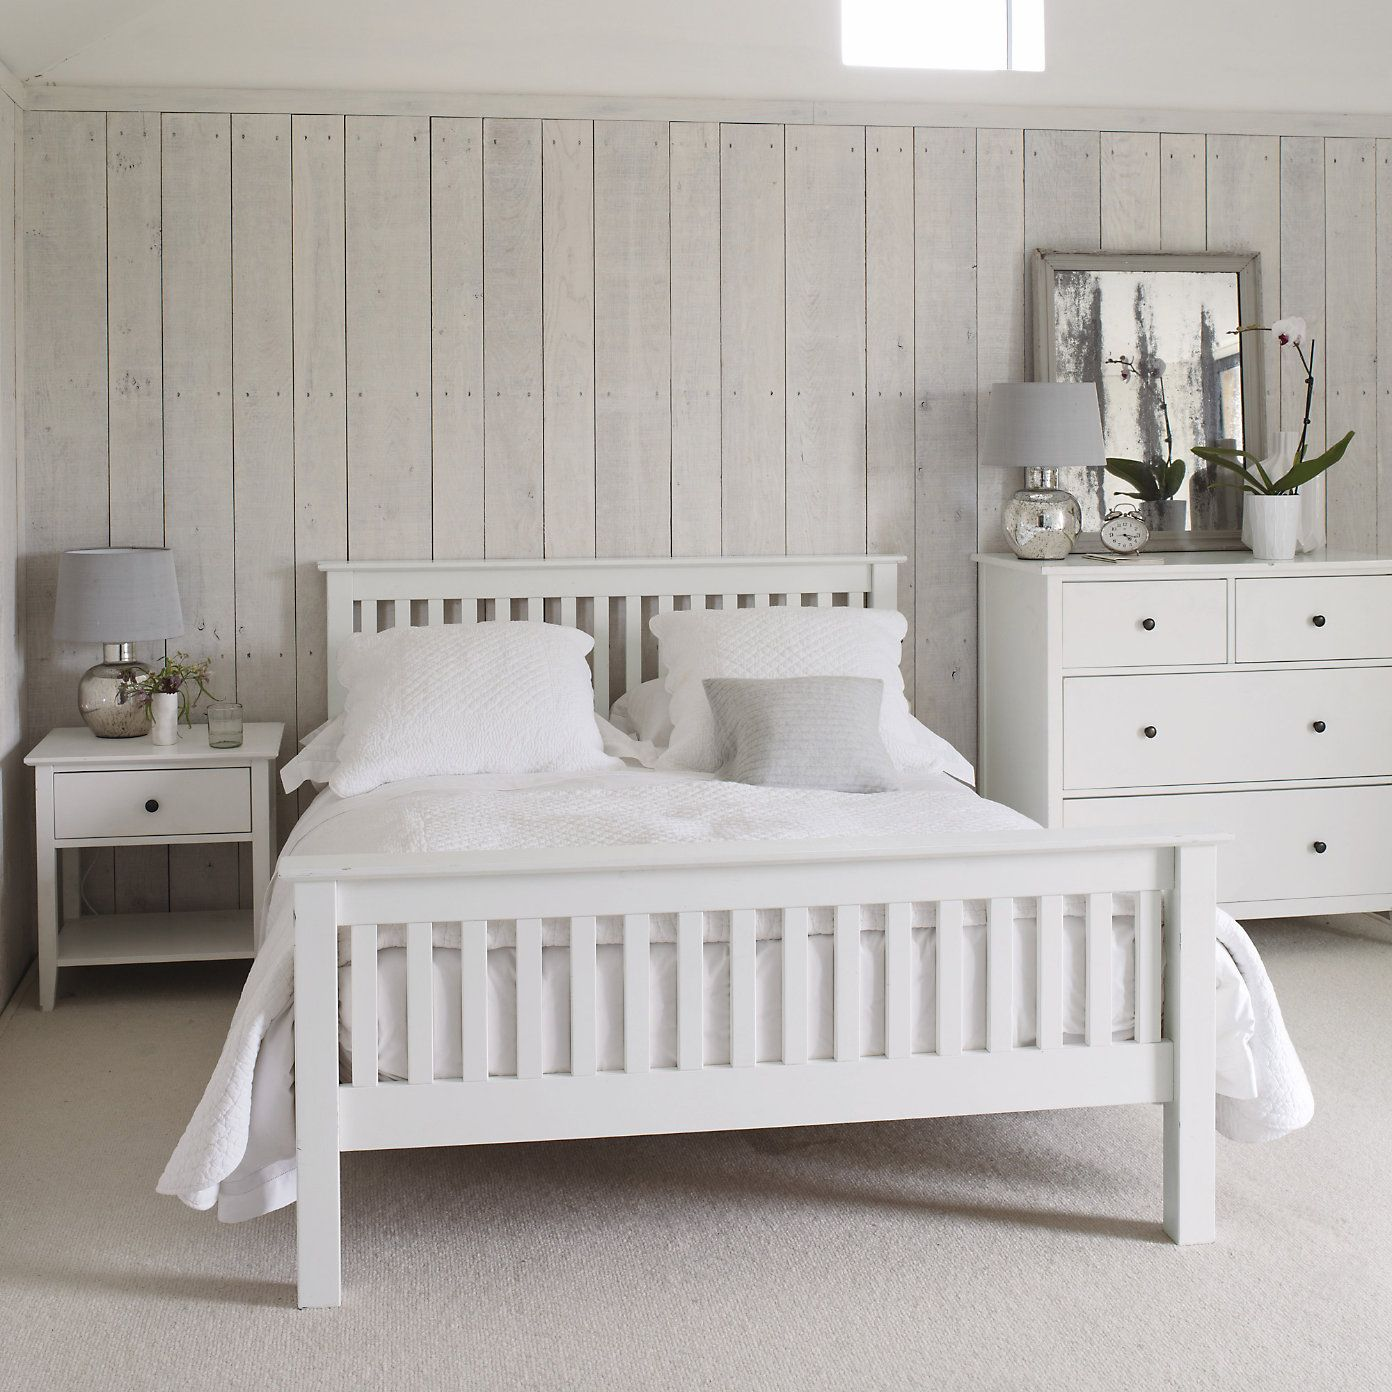 Best 25+ White Wooden Bed Ideas On Pinterest